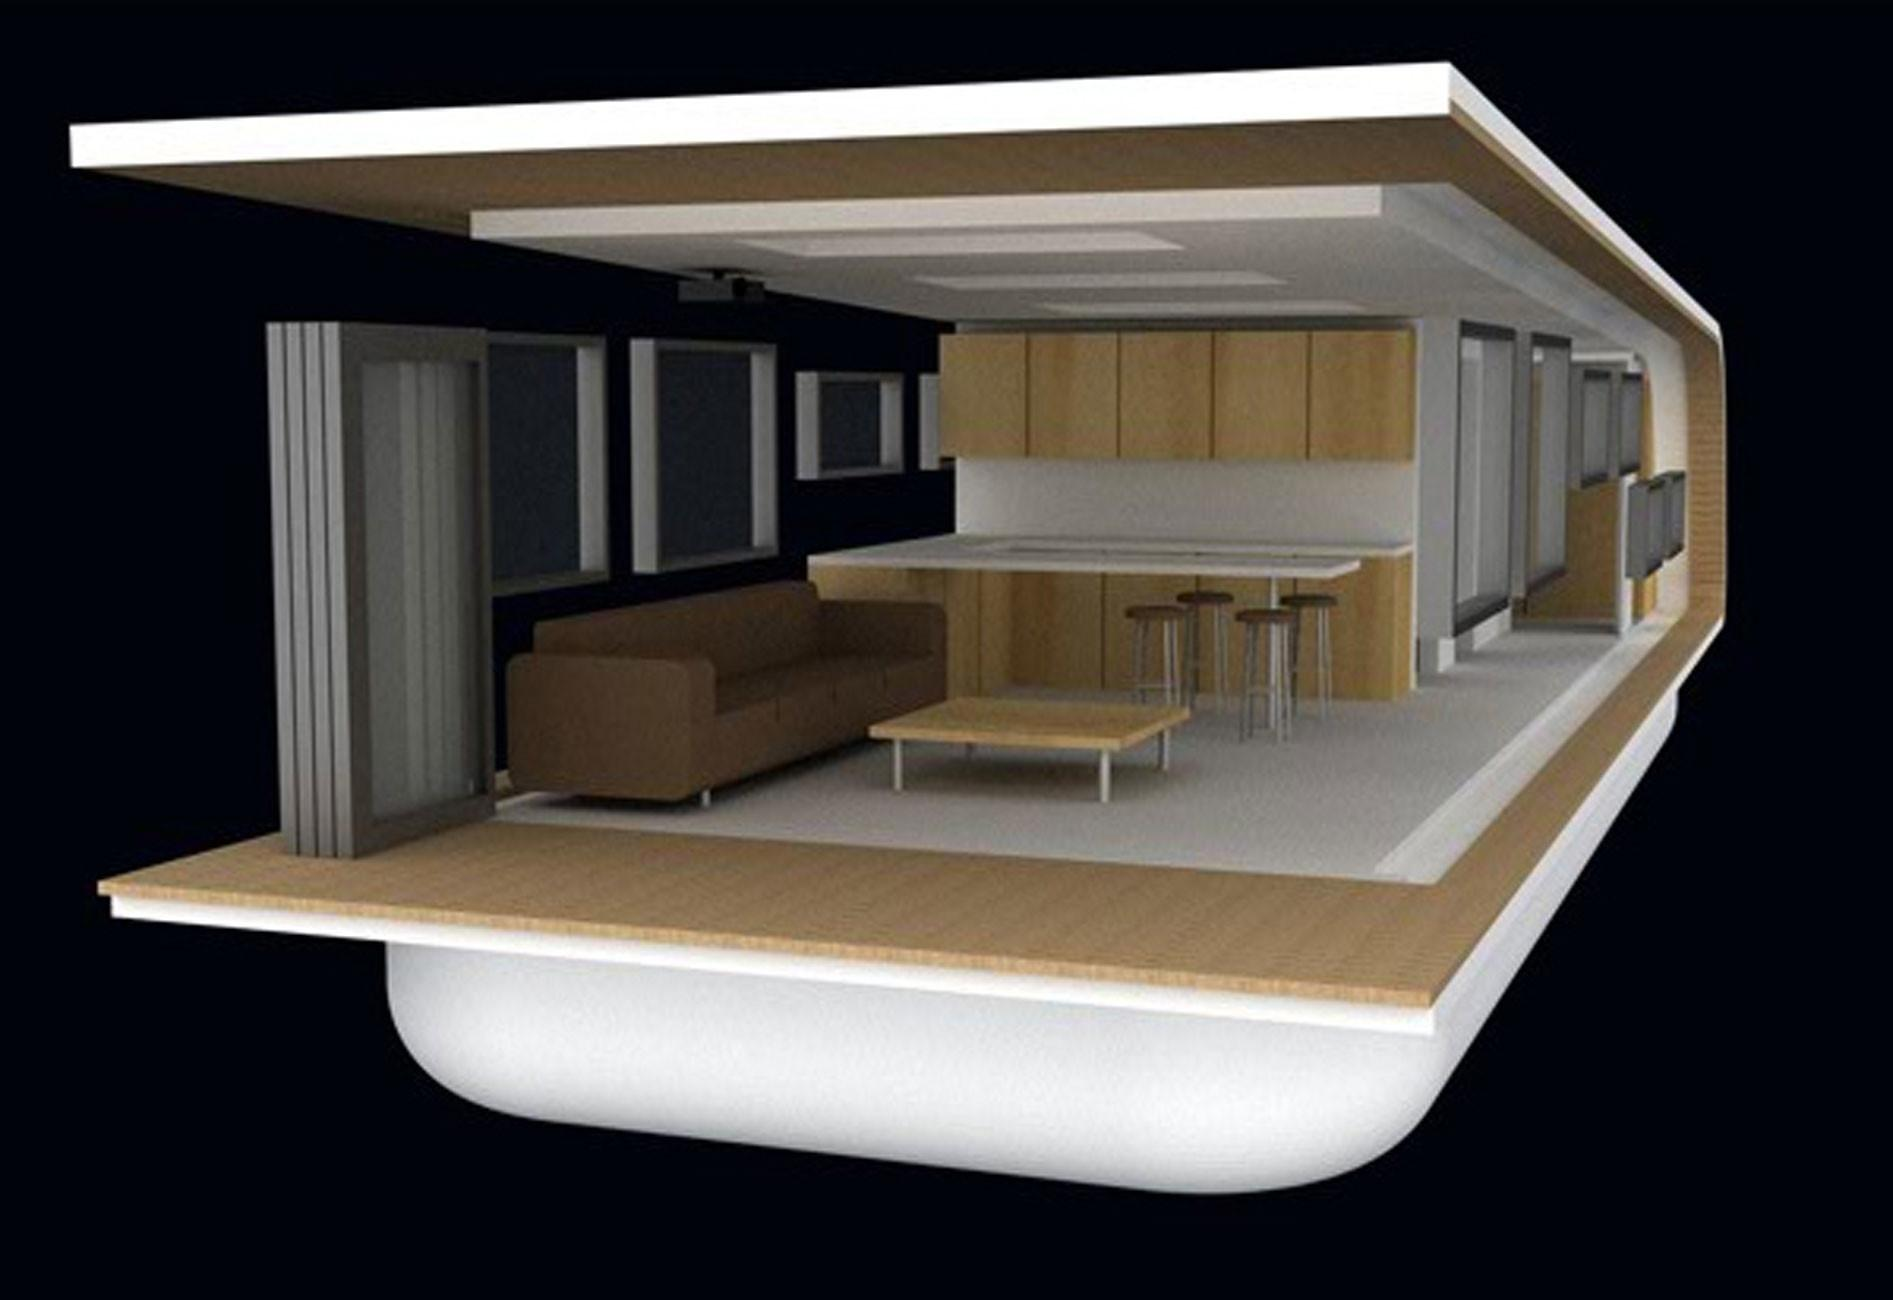 Solarhome Modern Mobile Floating House Concept